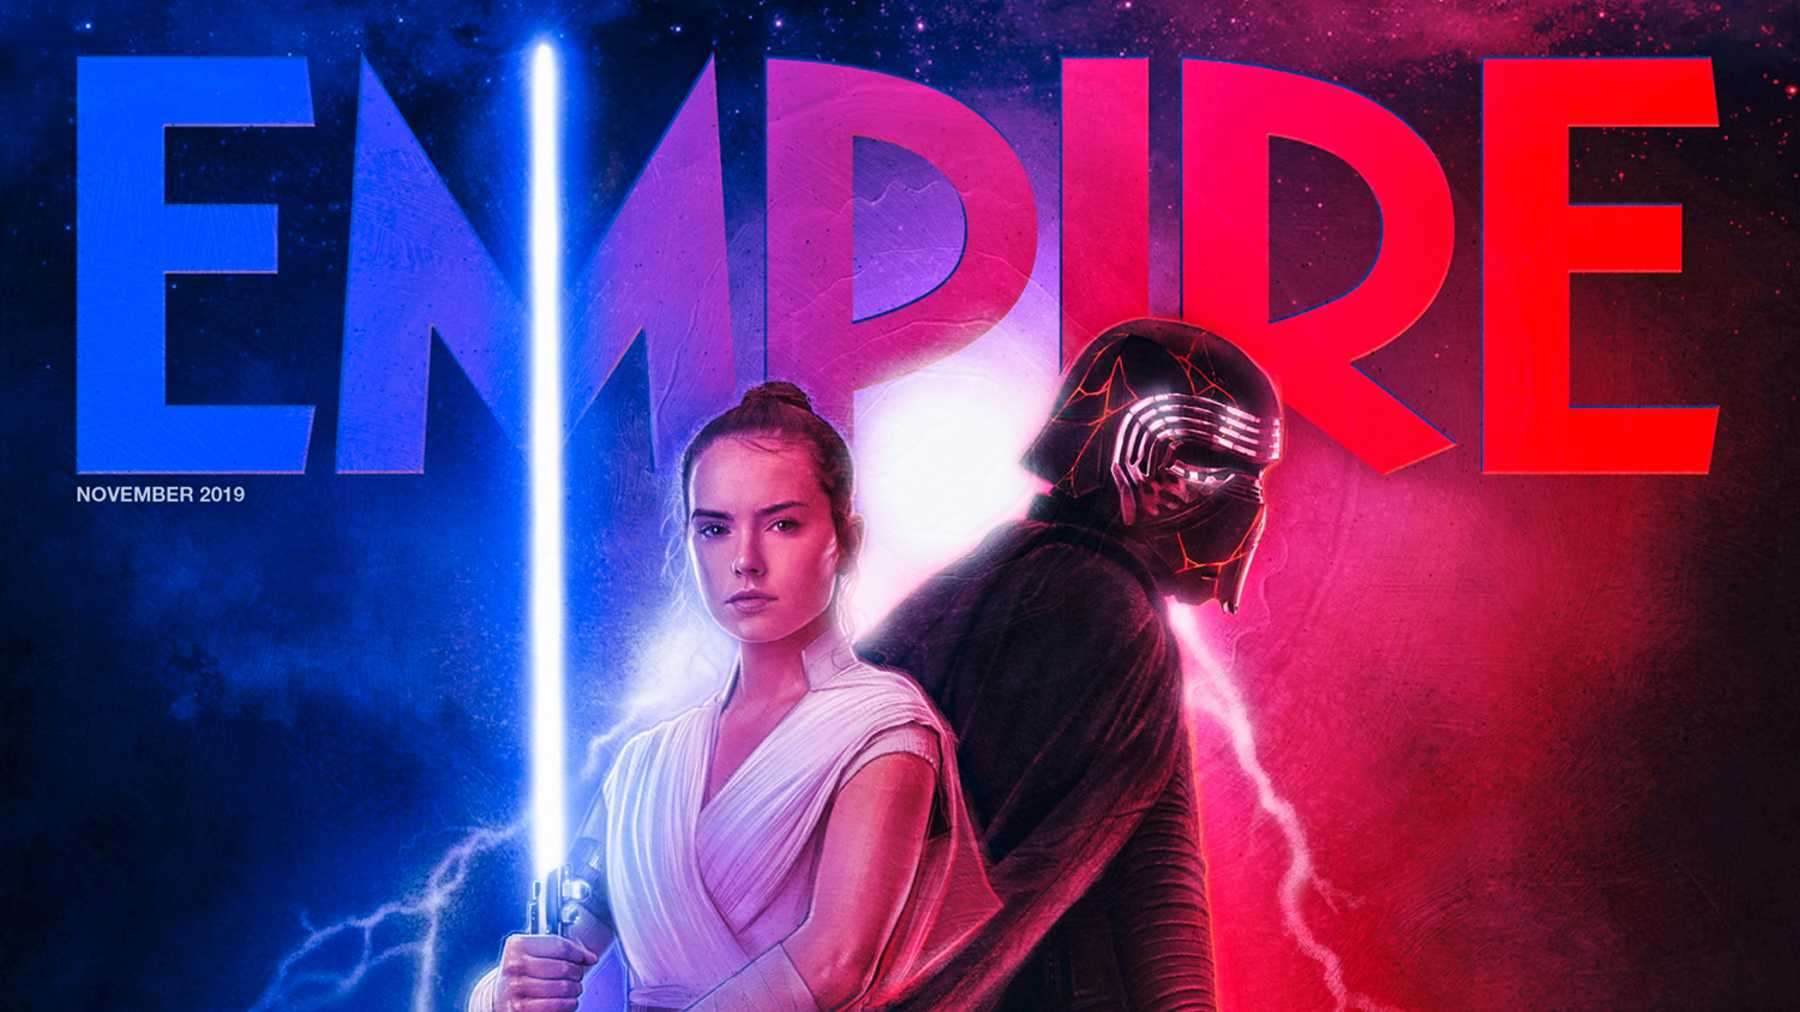 Empire S Star Wars The Rise Of Skywalker Covers Revealed Movies Empire